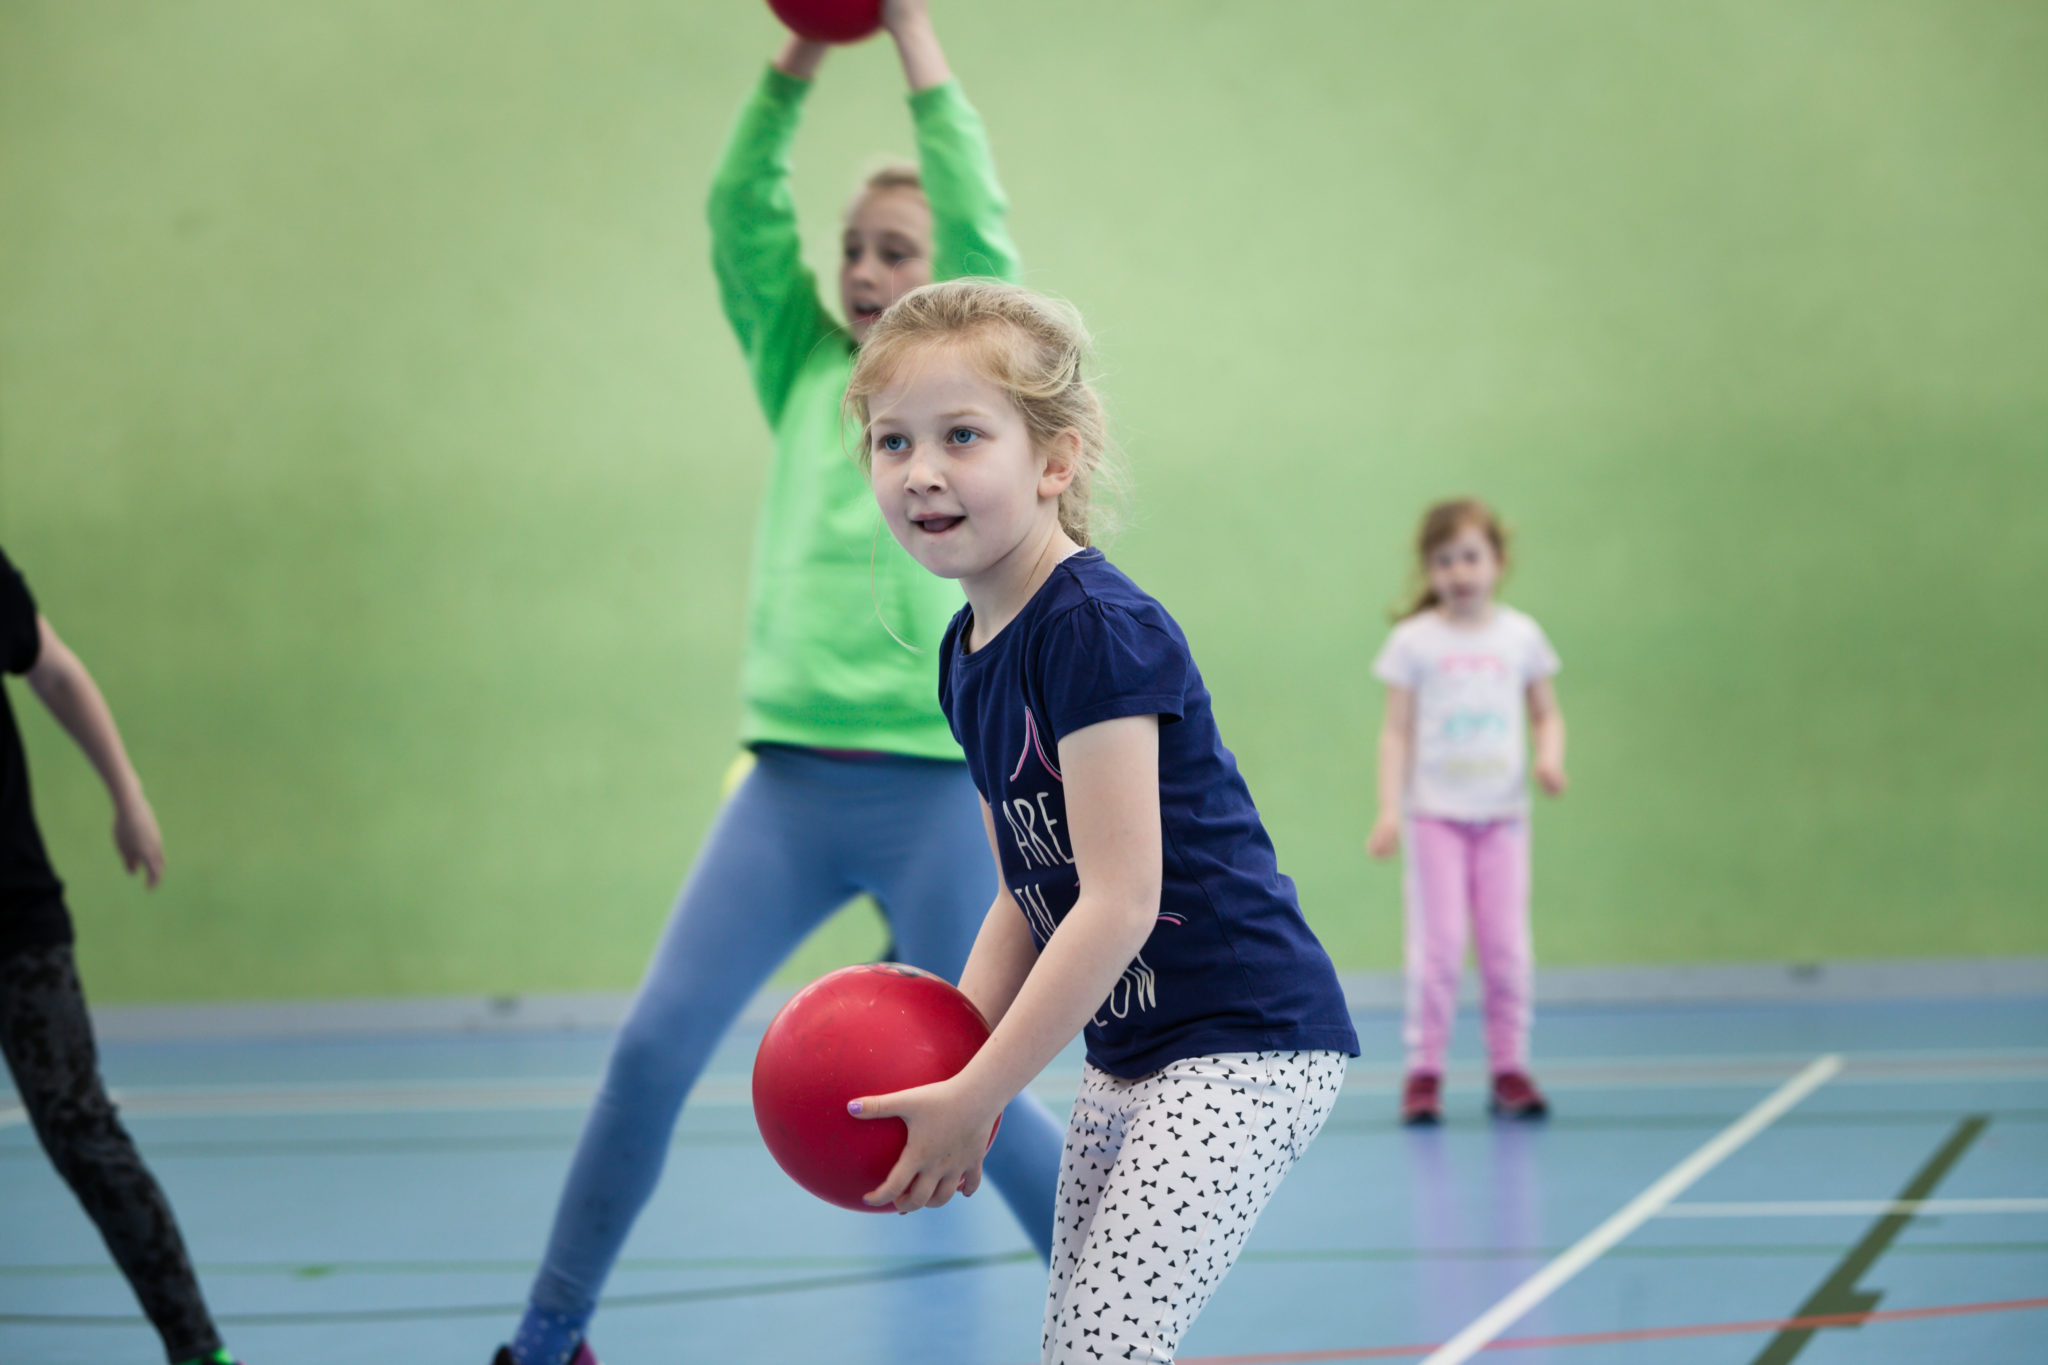 Why Competition in Sport is good for children